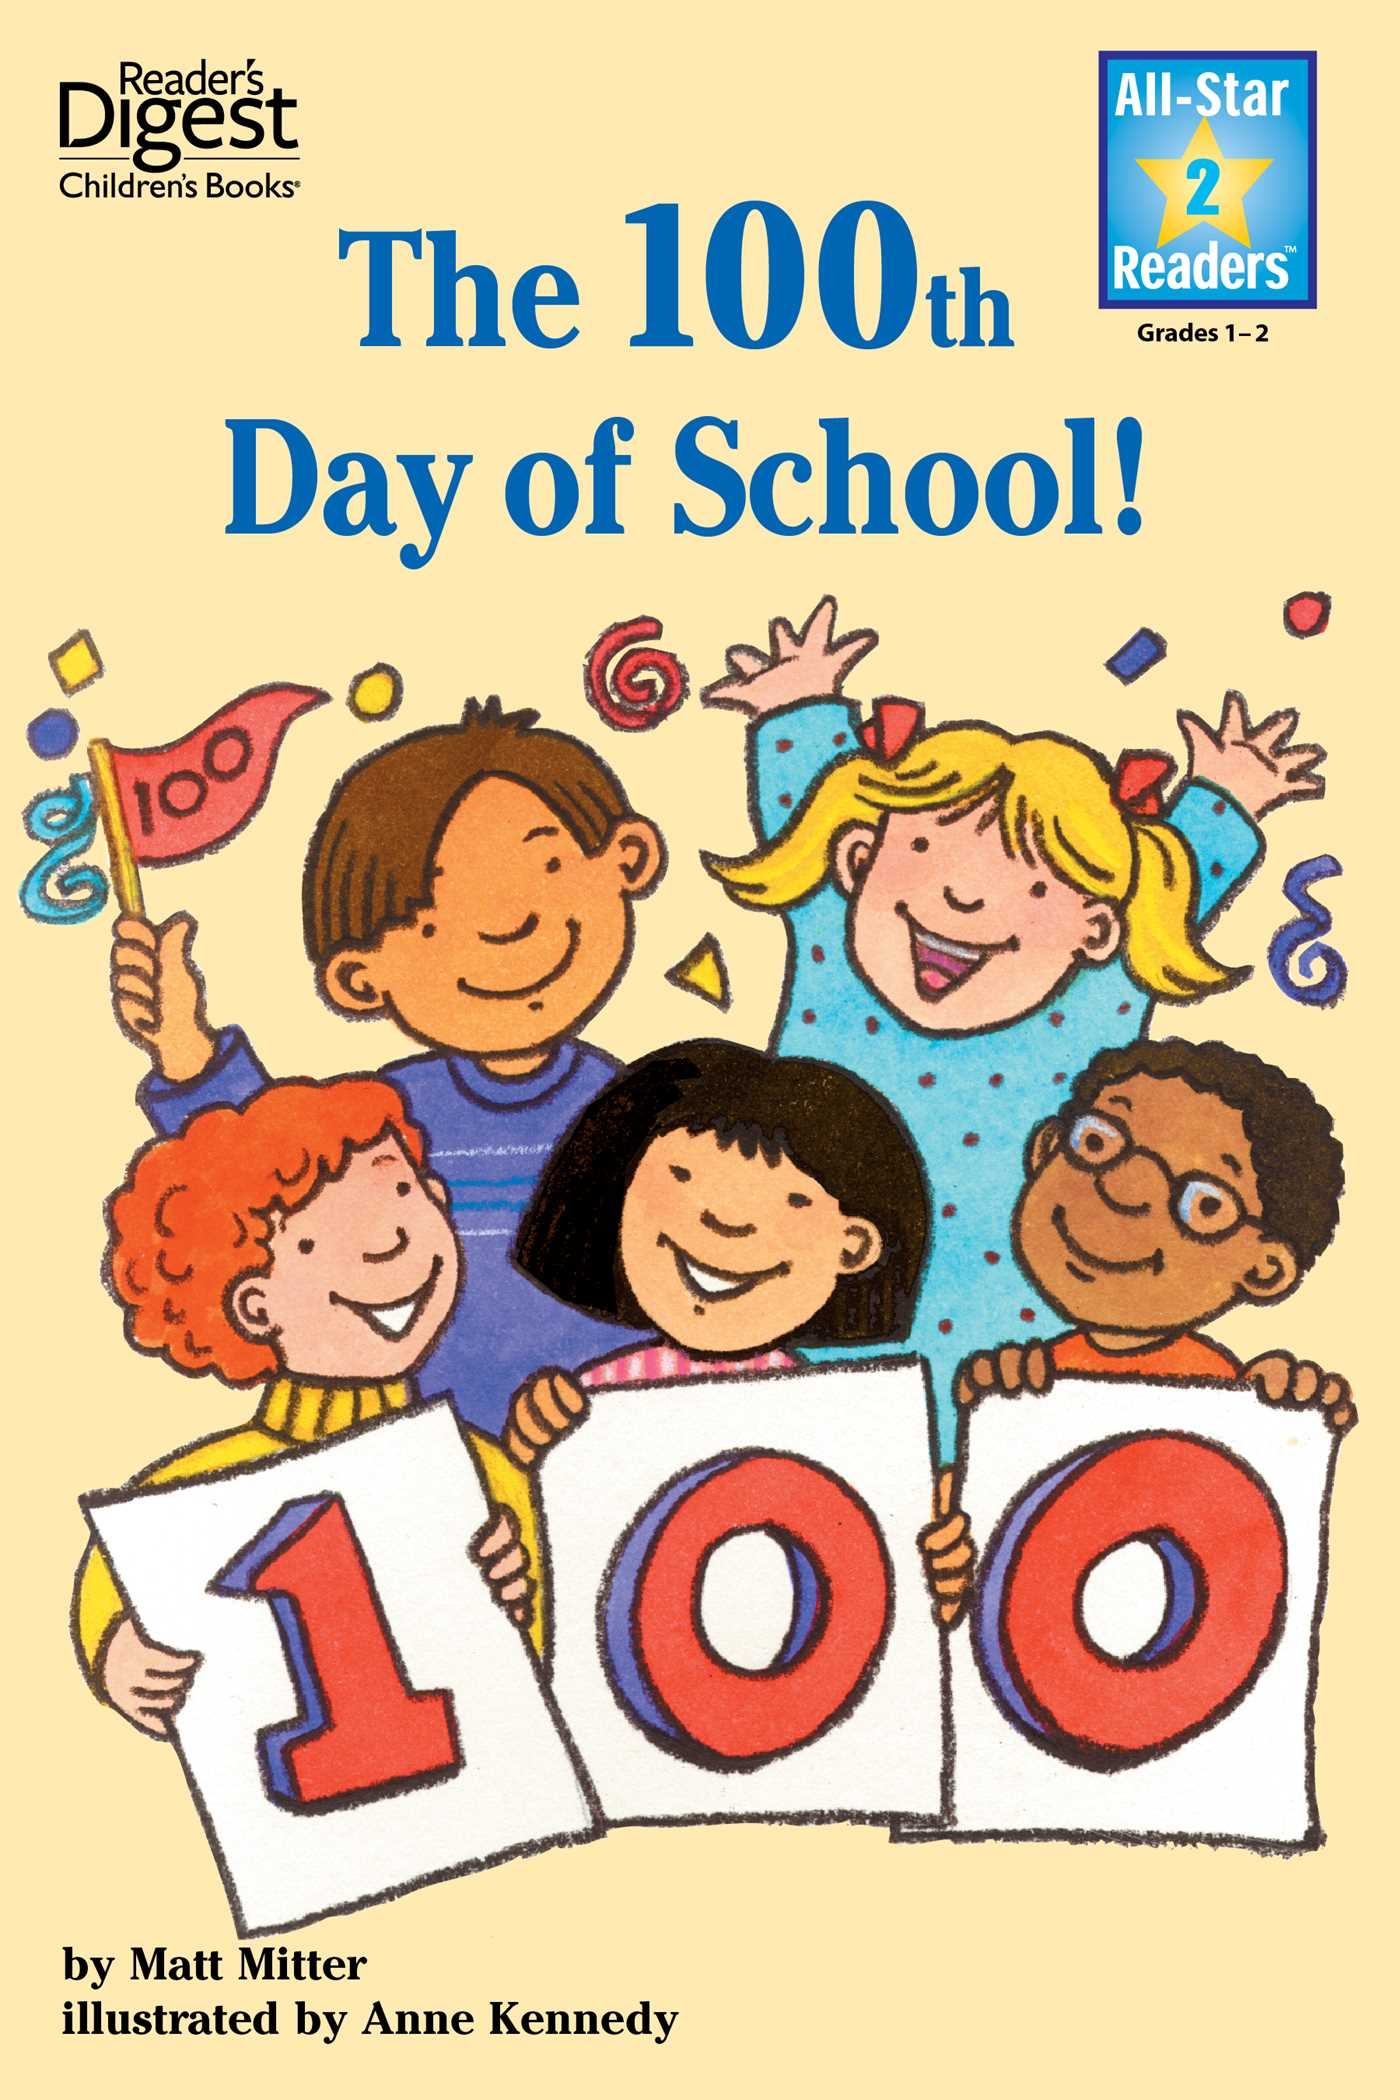 The-100th-day-of-school-readers-digest-9780794424961_hr